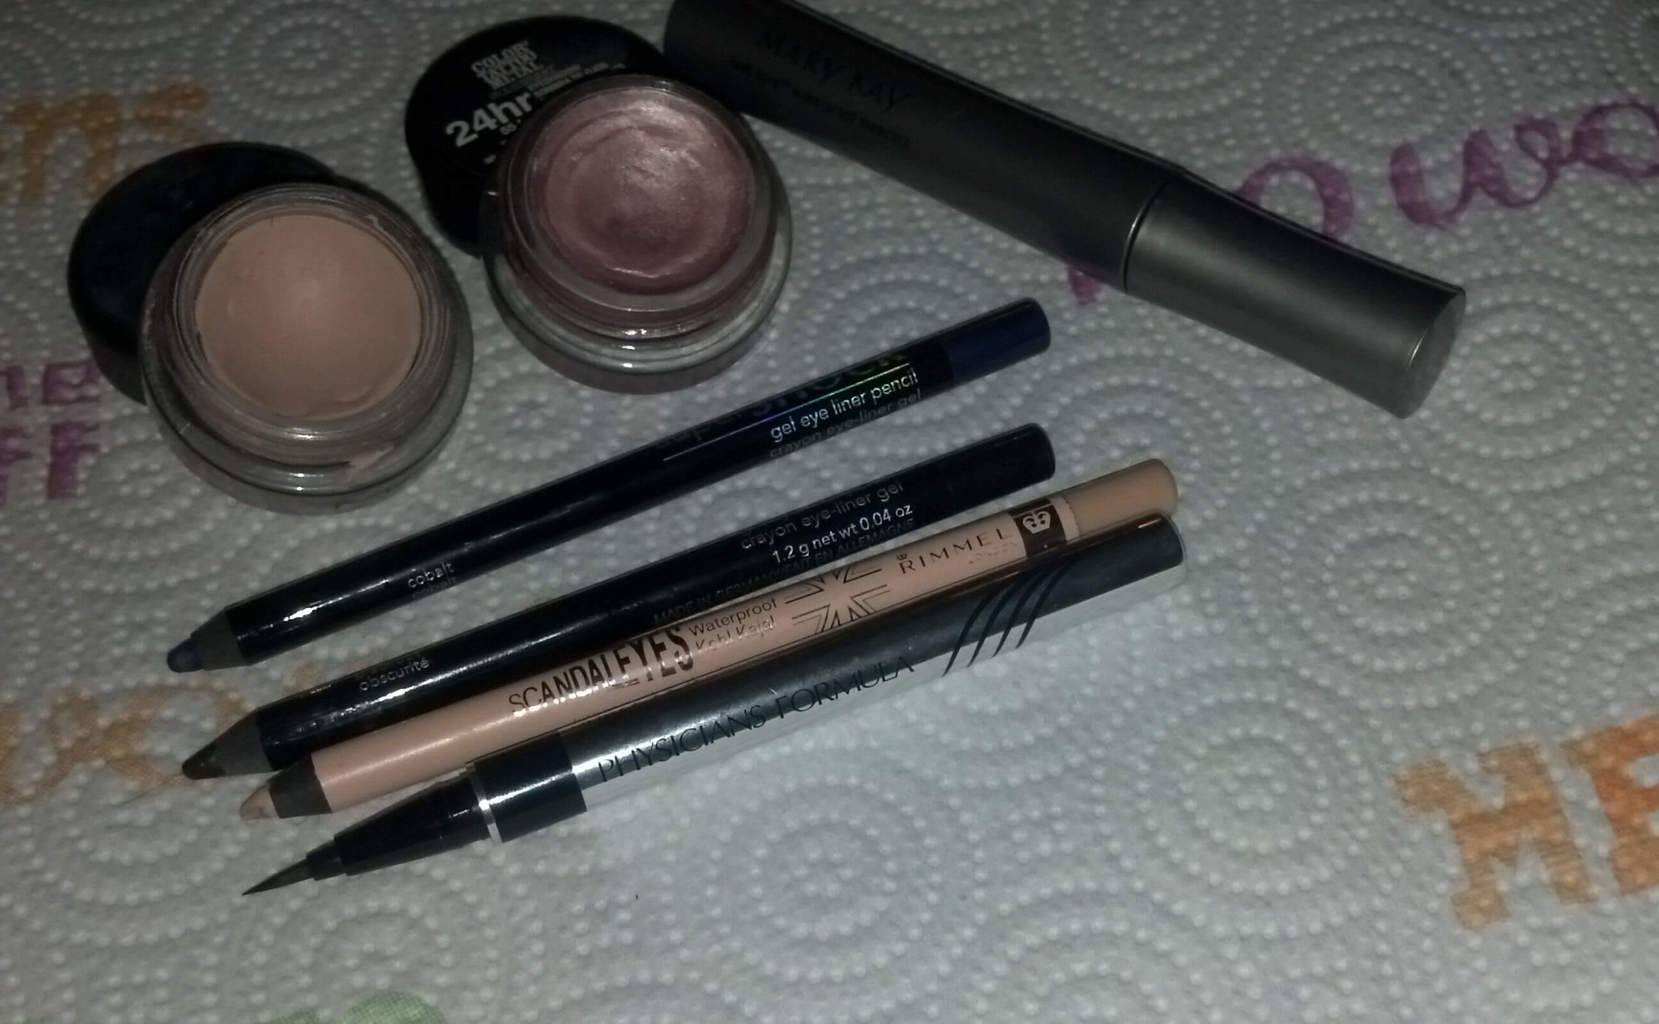 Beth And Beautys Lorac Pro Champagne Eye Tutorial Beauty Lt Eyeliner Pencil Waterproof Liner Other Products